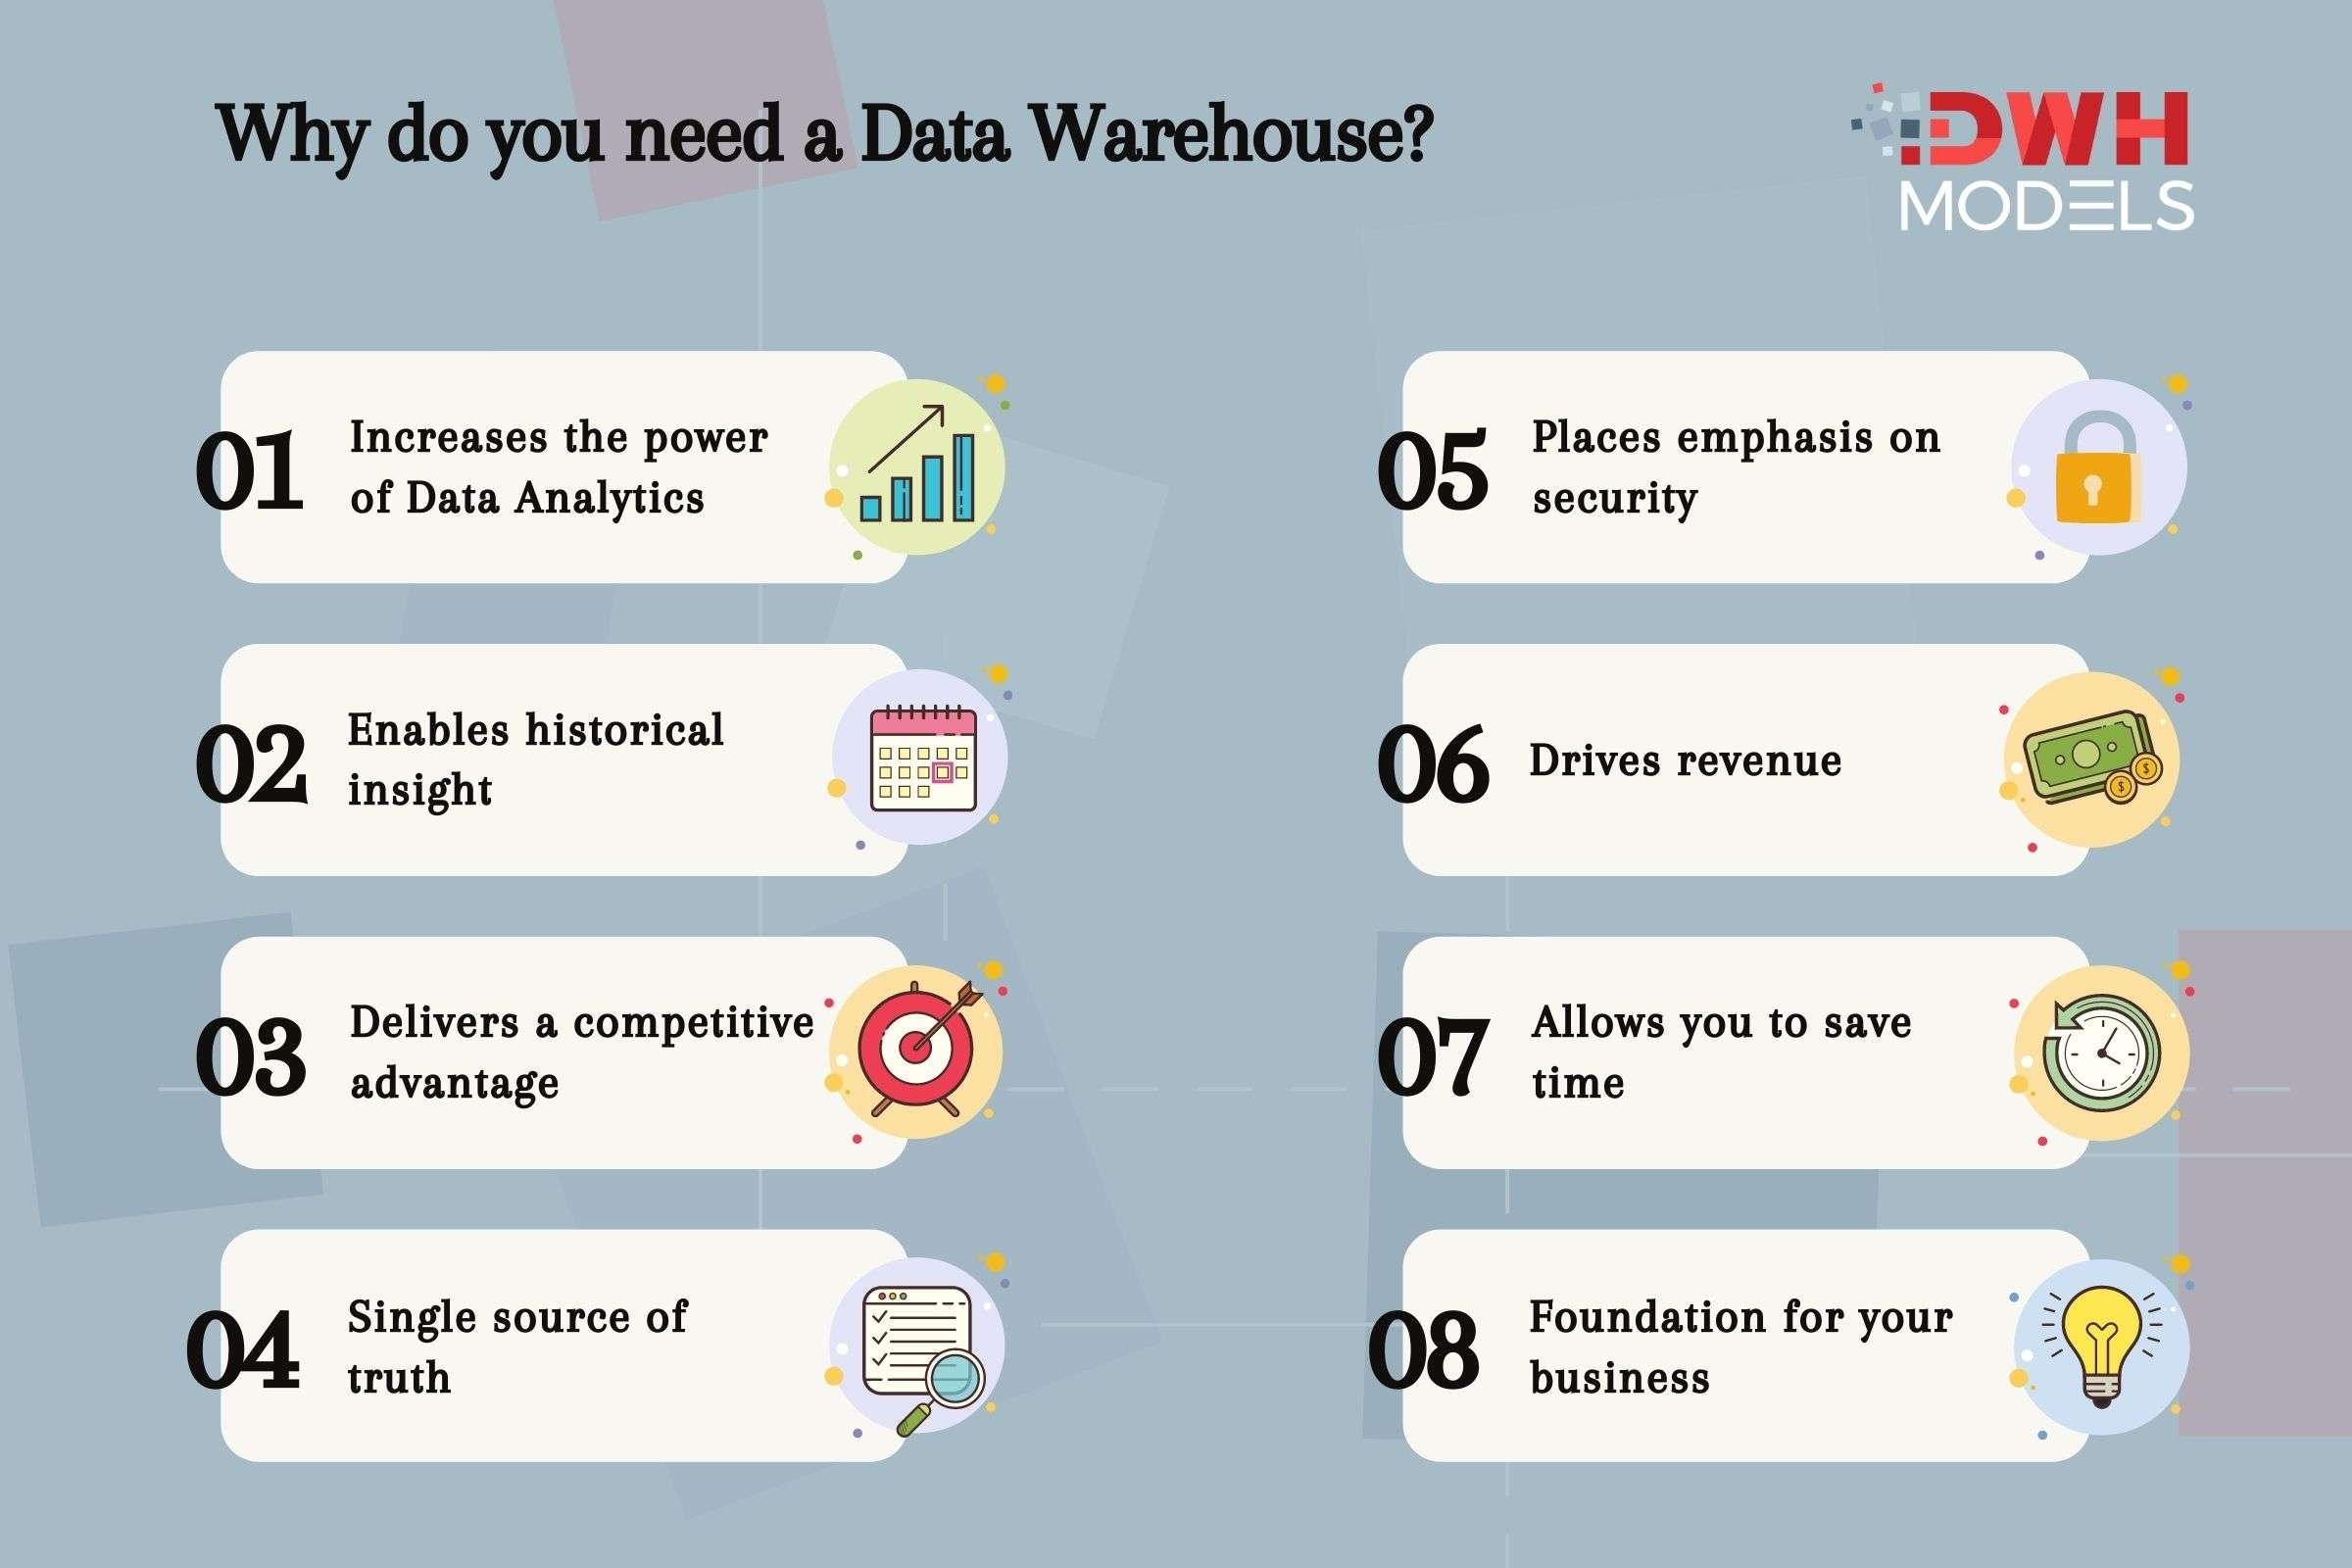 Why do you need Data Warehouse